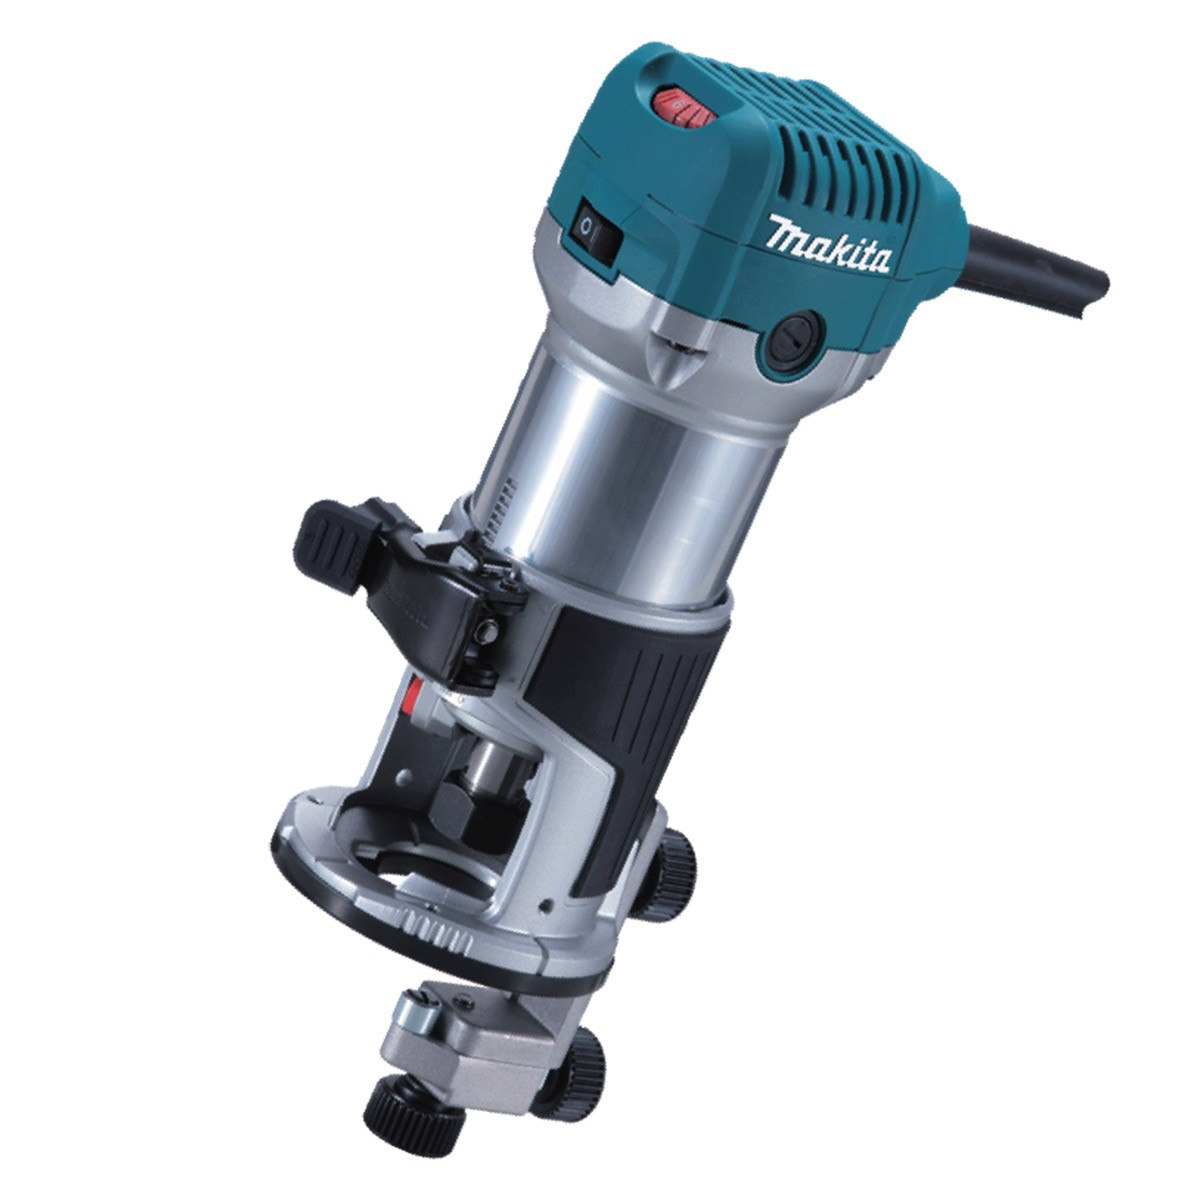 Makita RT0700CX4 Trimmer Router 110v